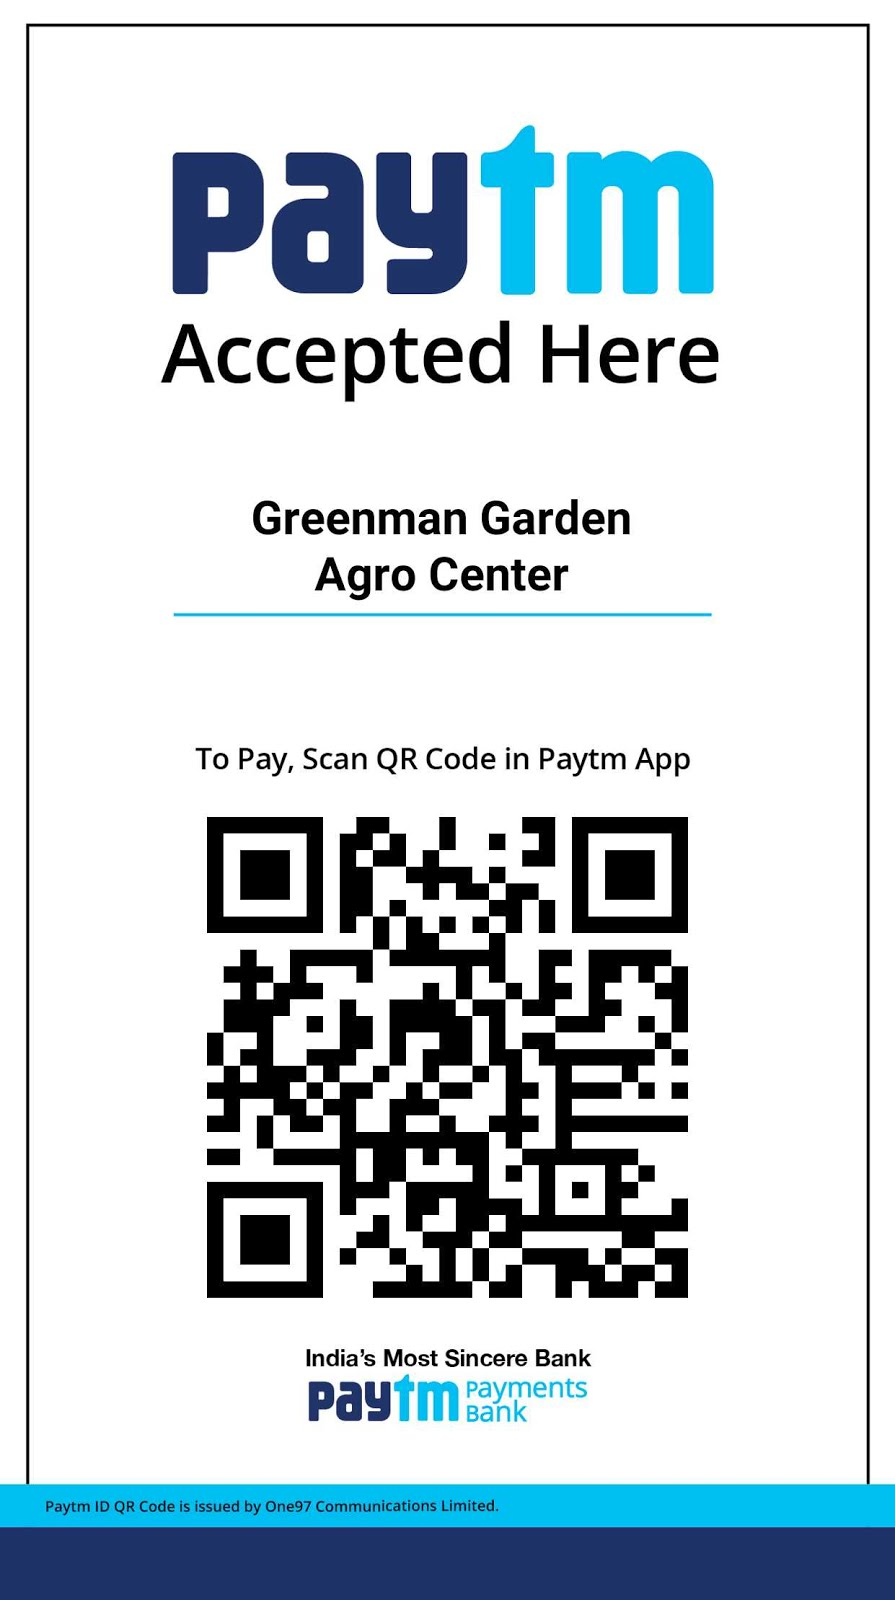 Greenman Garden Agro Center Paytm Code